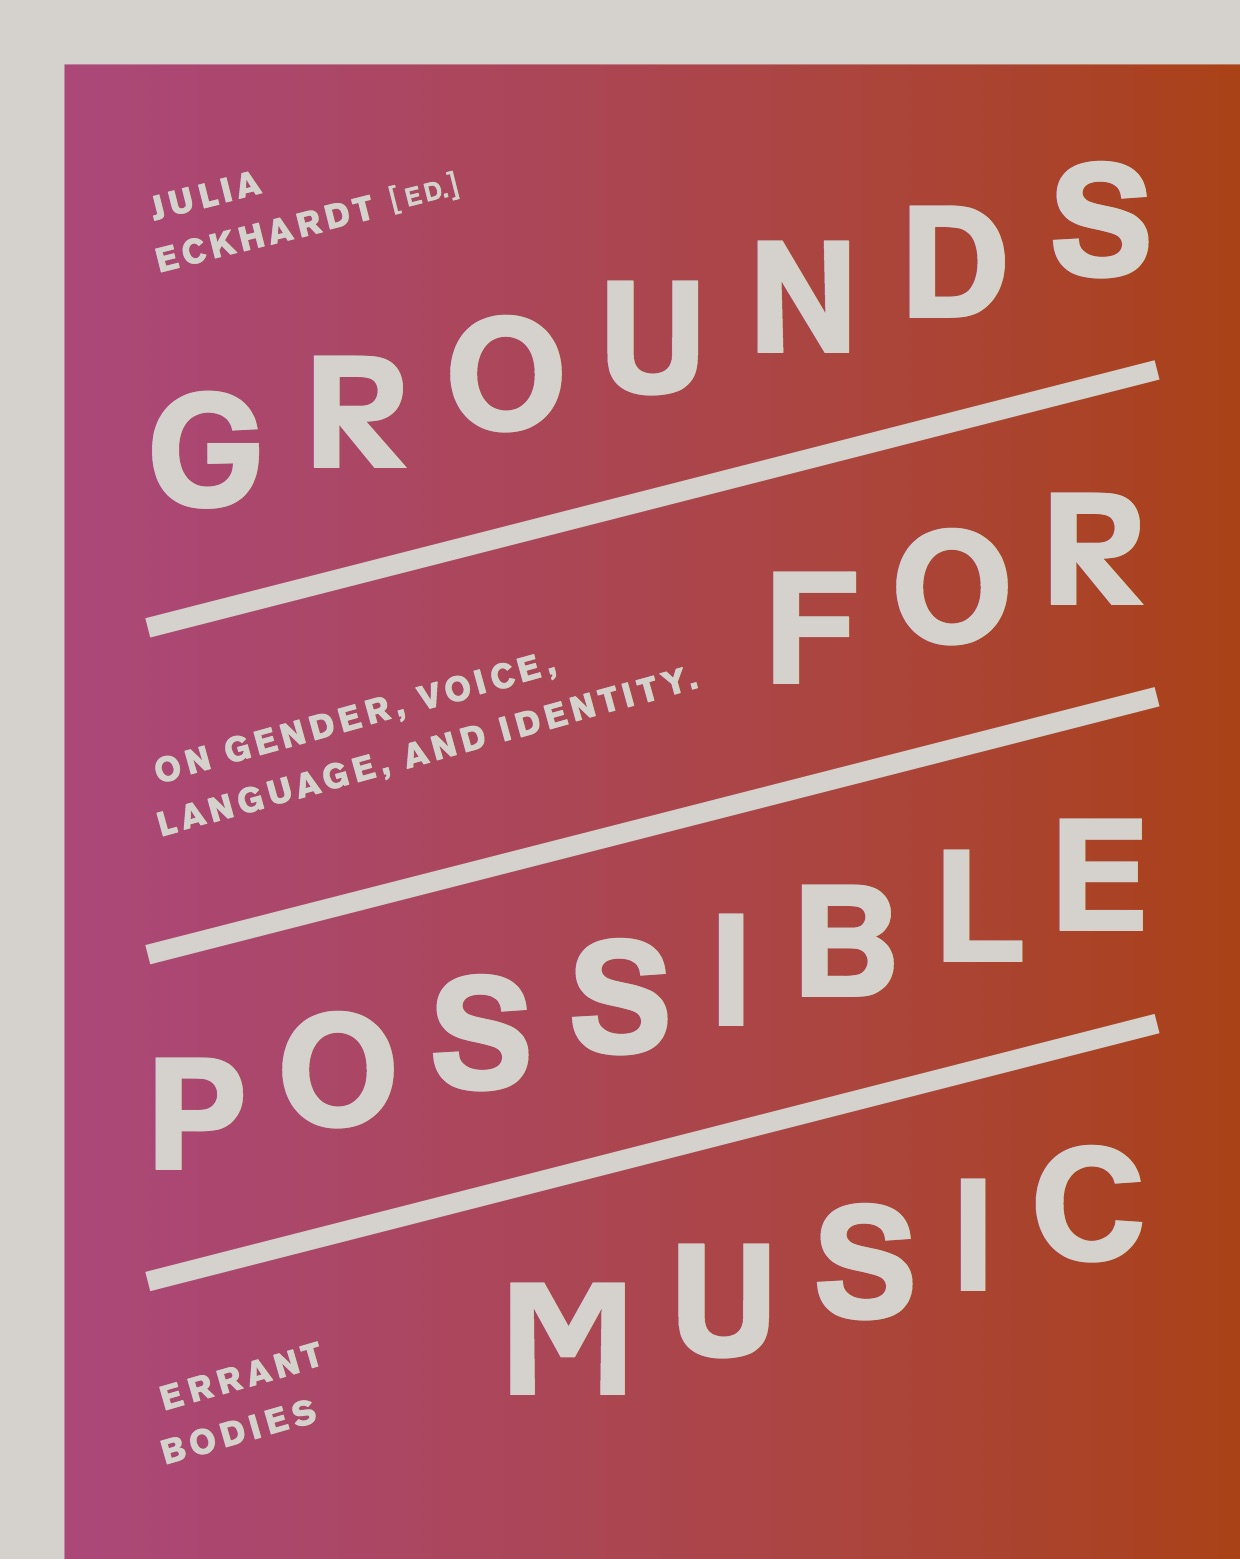 Grounds for possible music, Errant Bodies